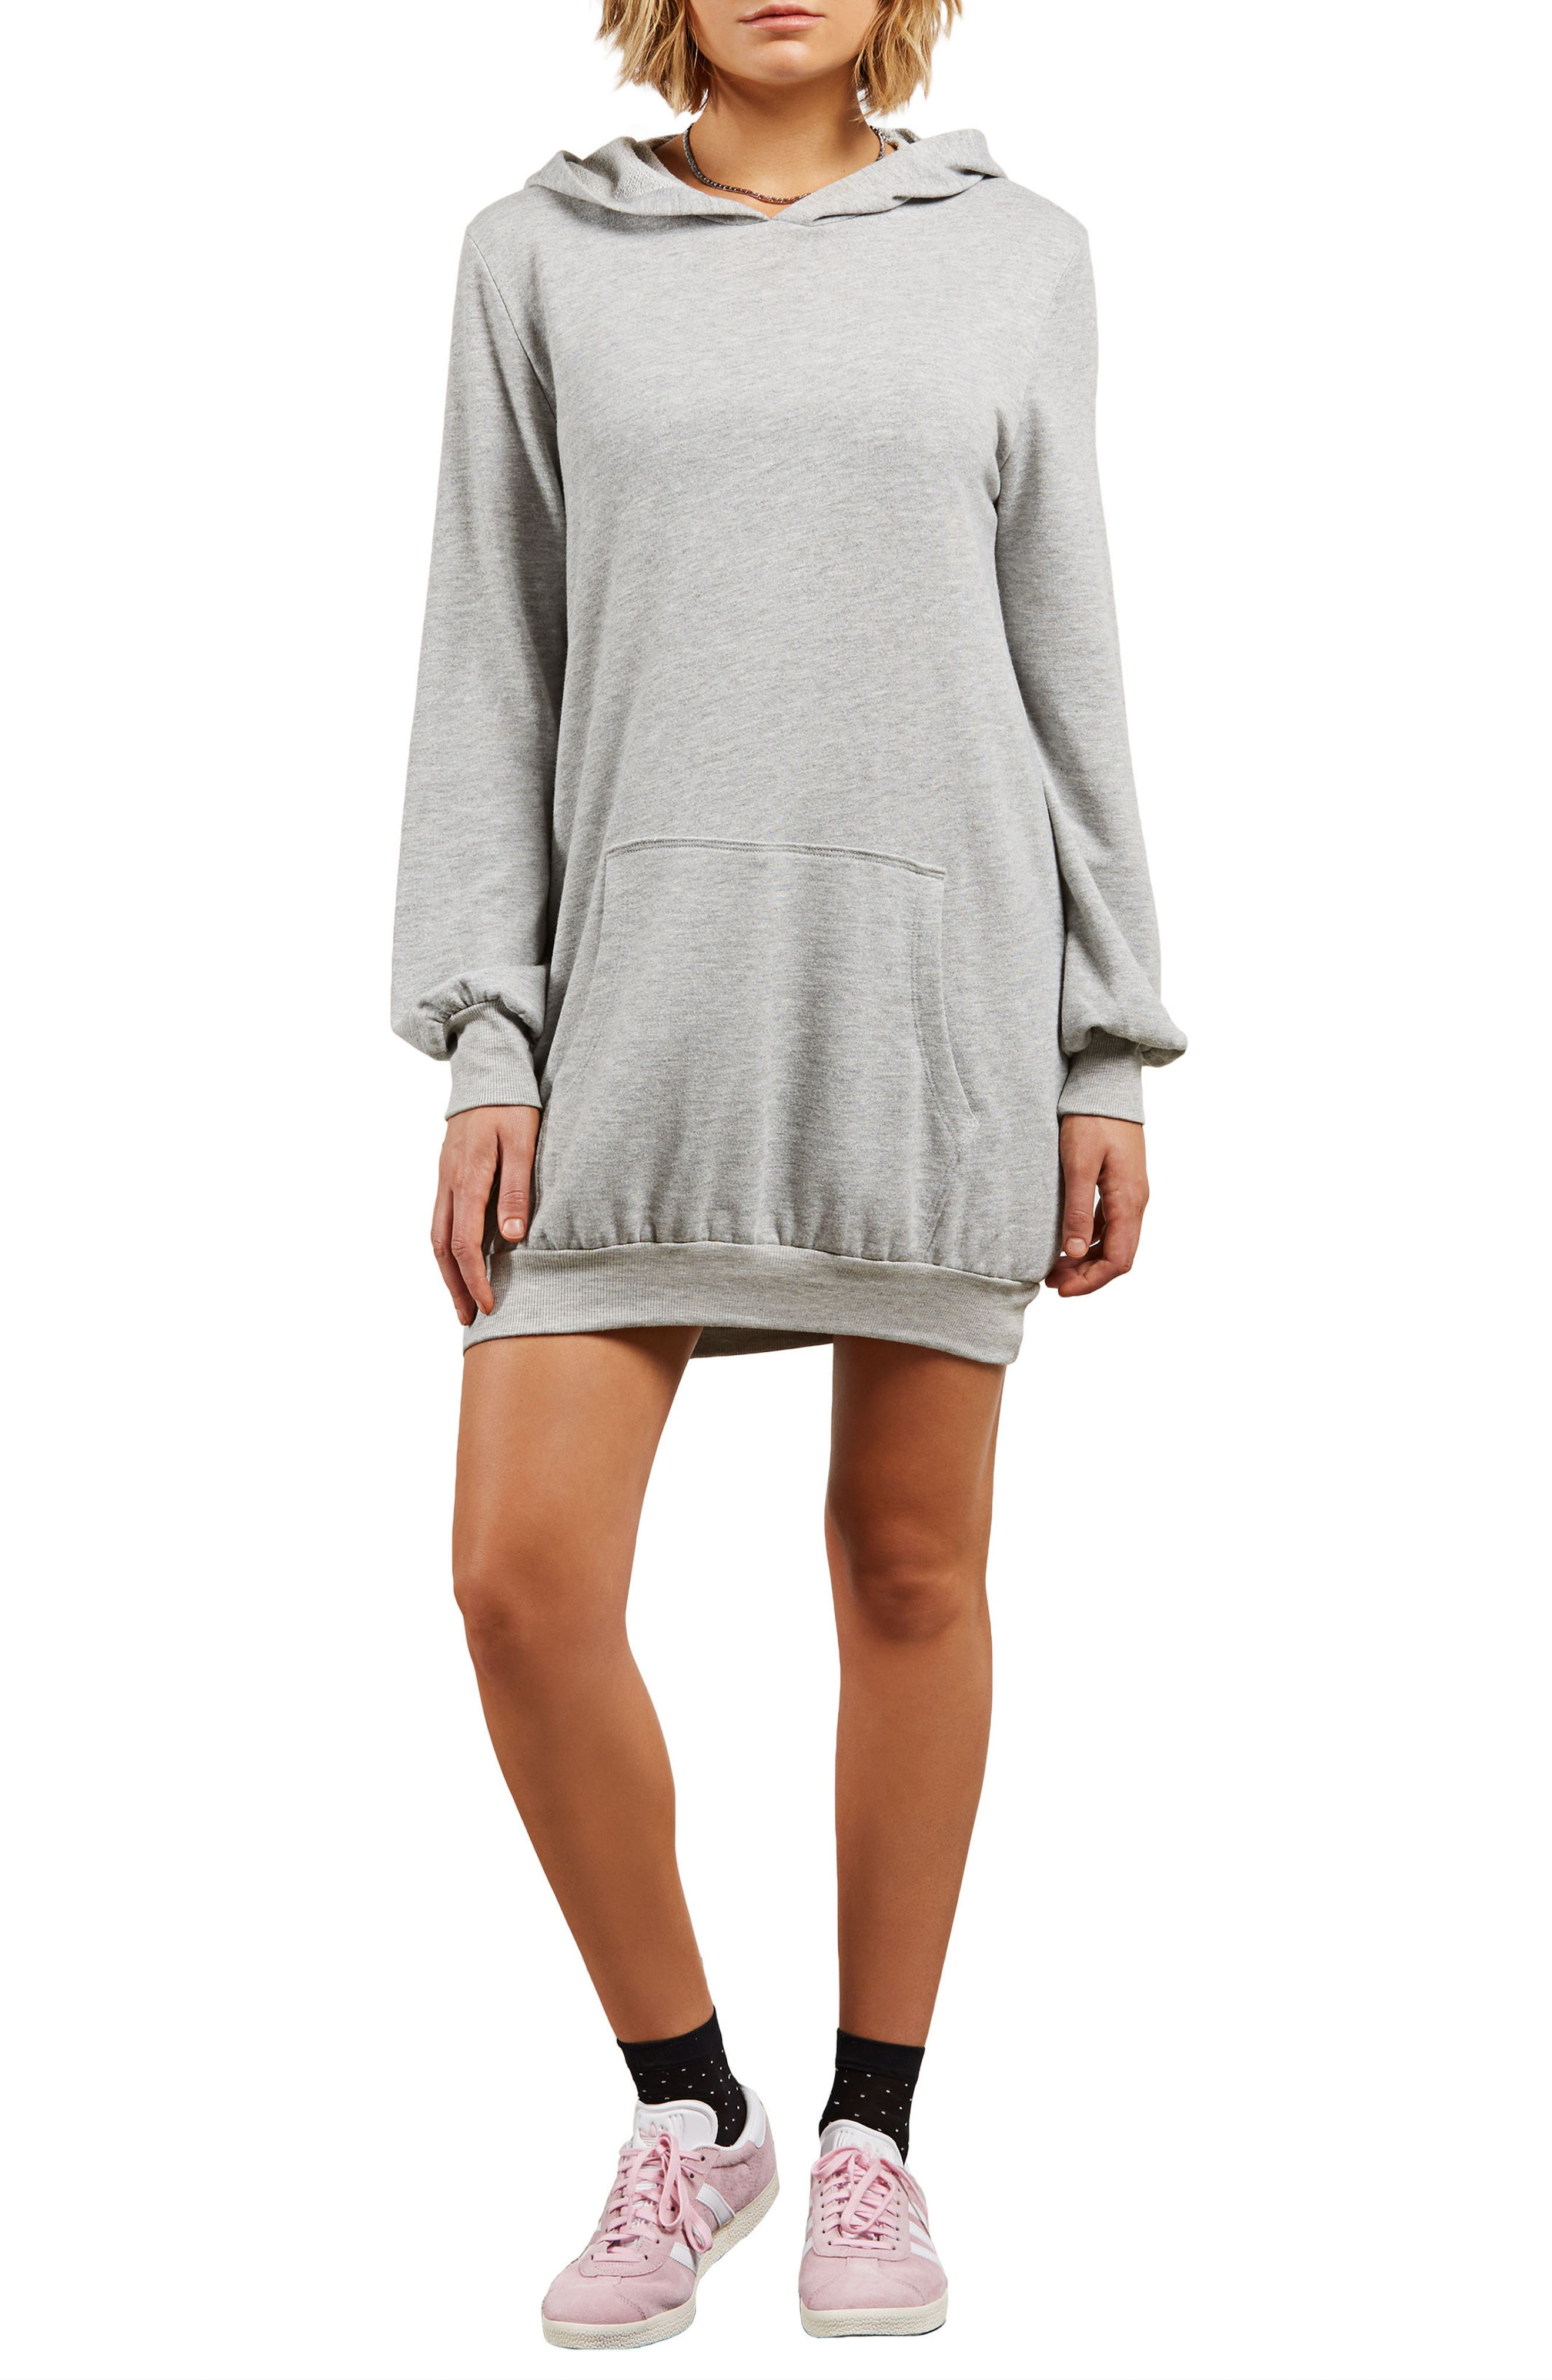 Alternate Image 1 Selected - Volcom Sweatshirt Dress